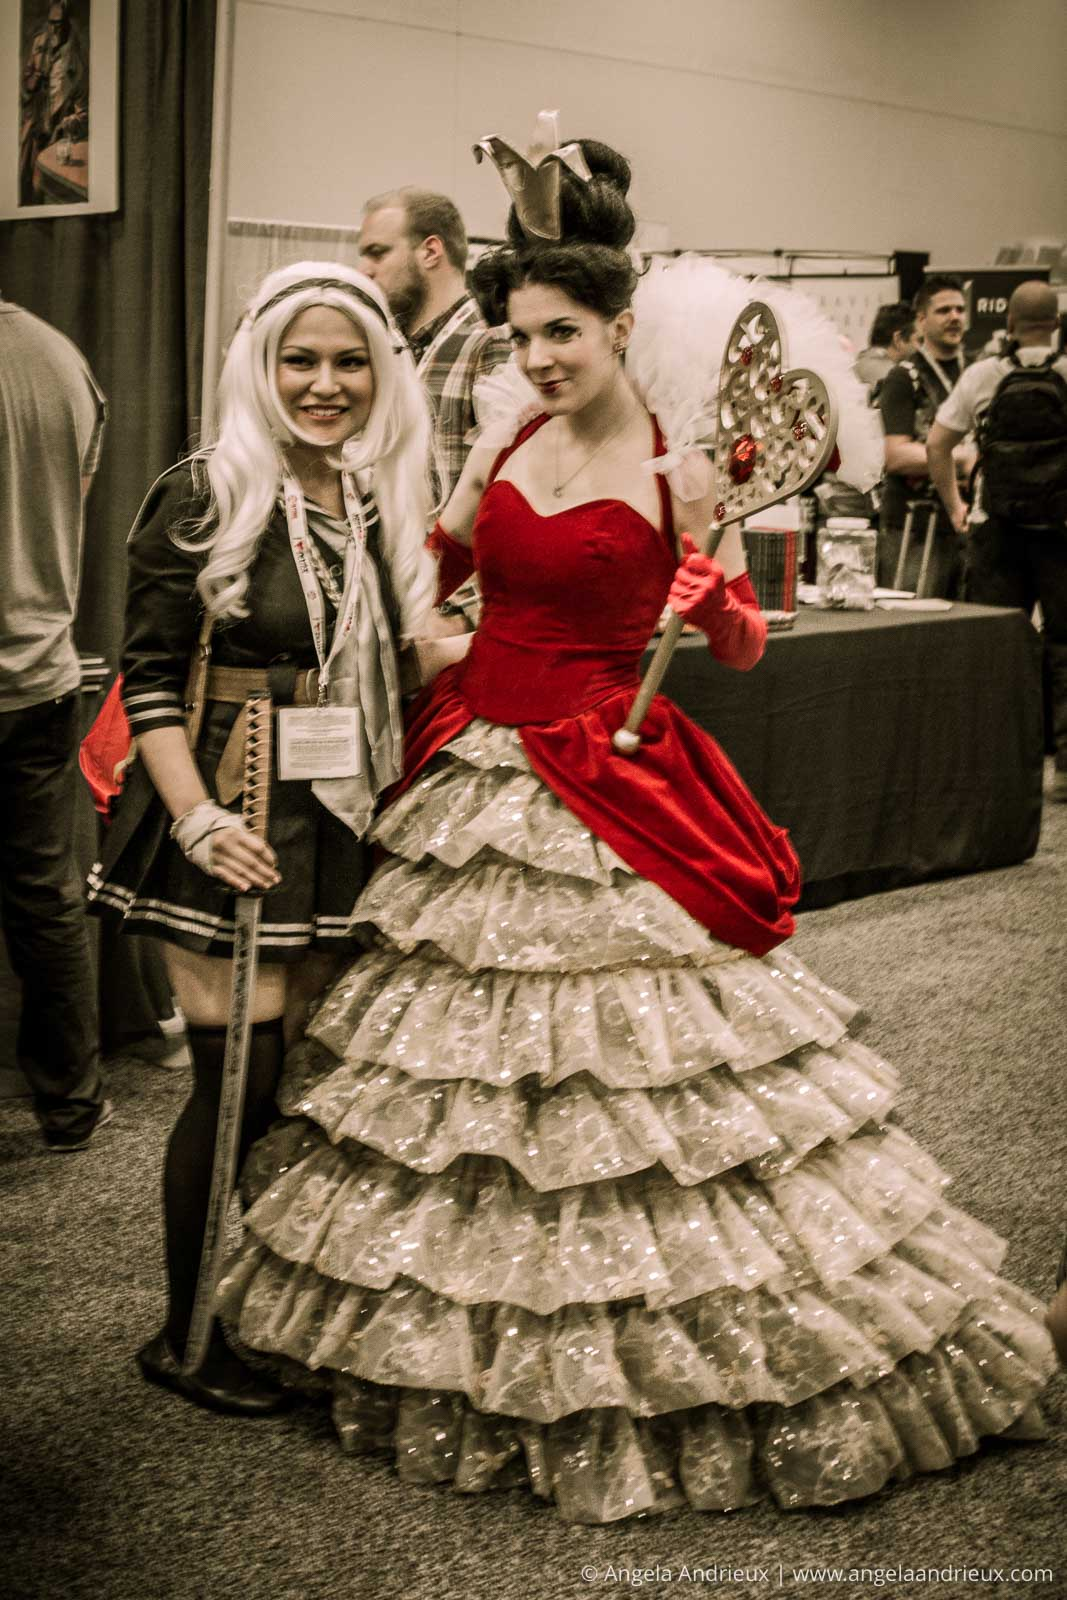 Cosplay at SDCC 2013